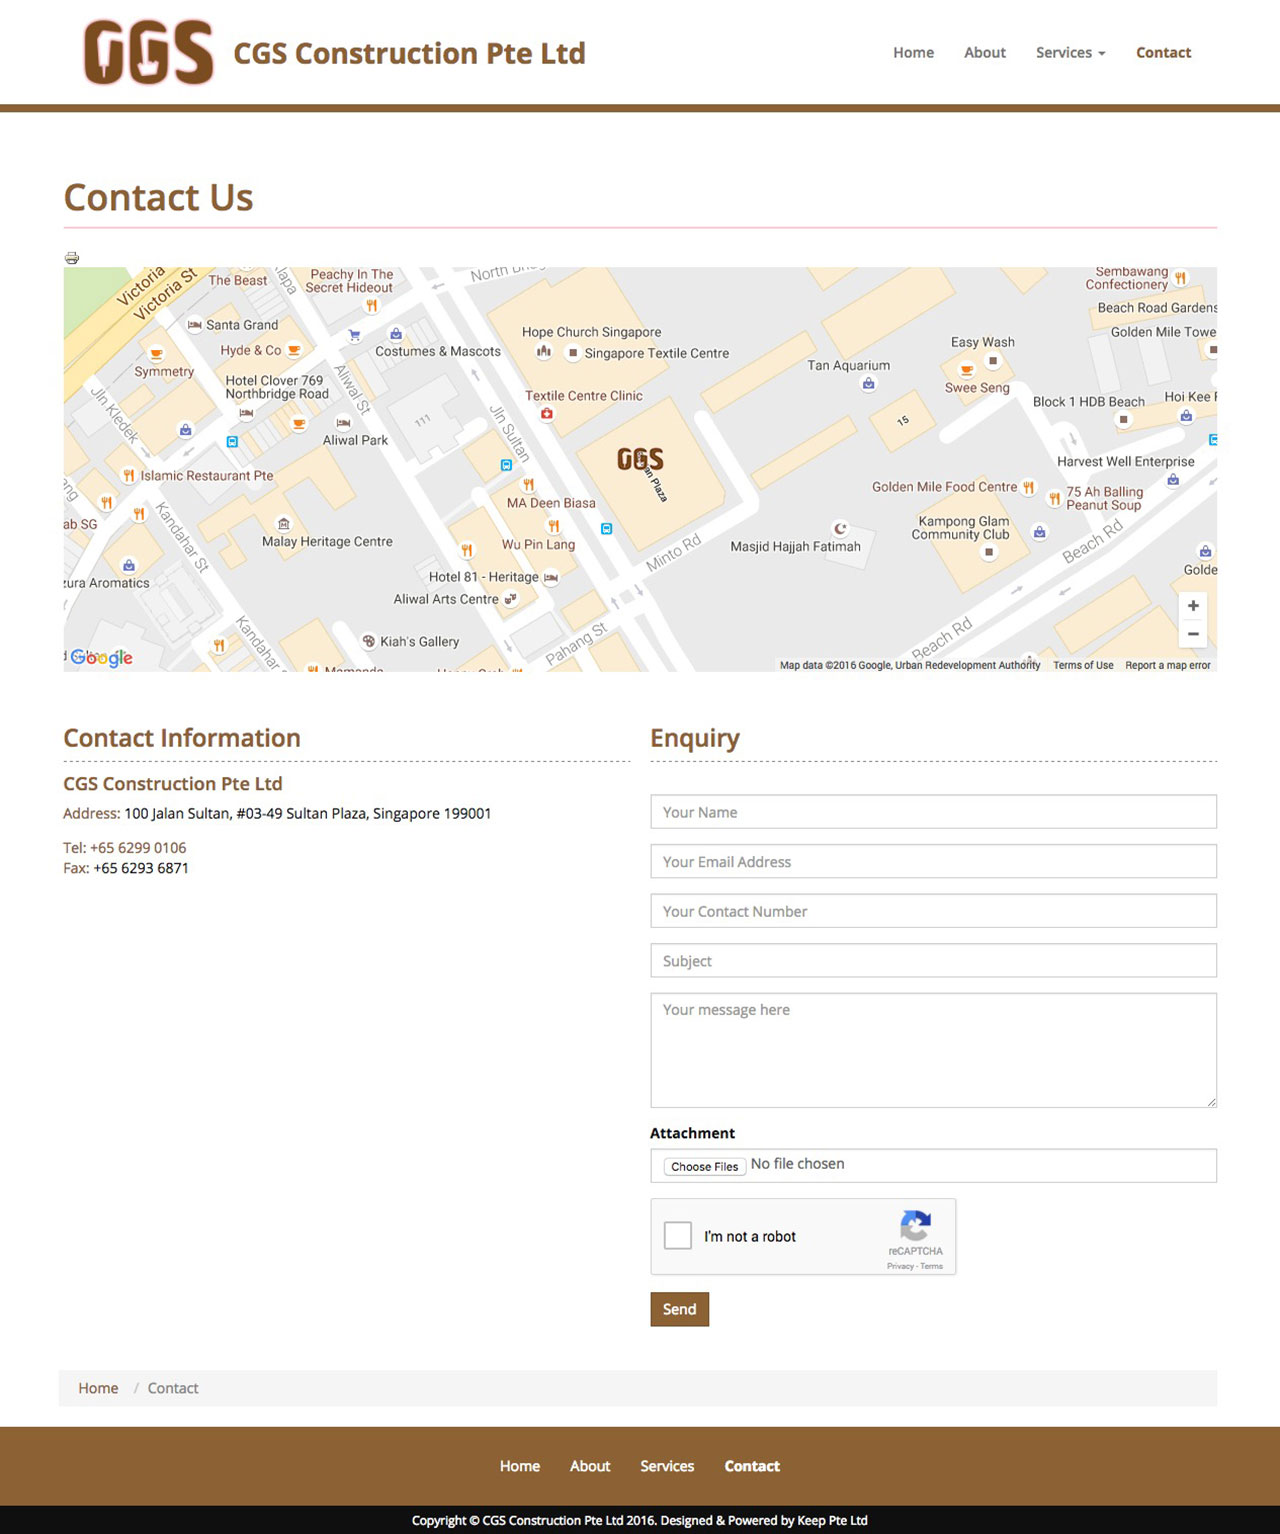 CGS Construction website contact